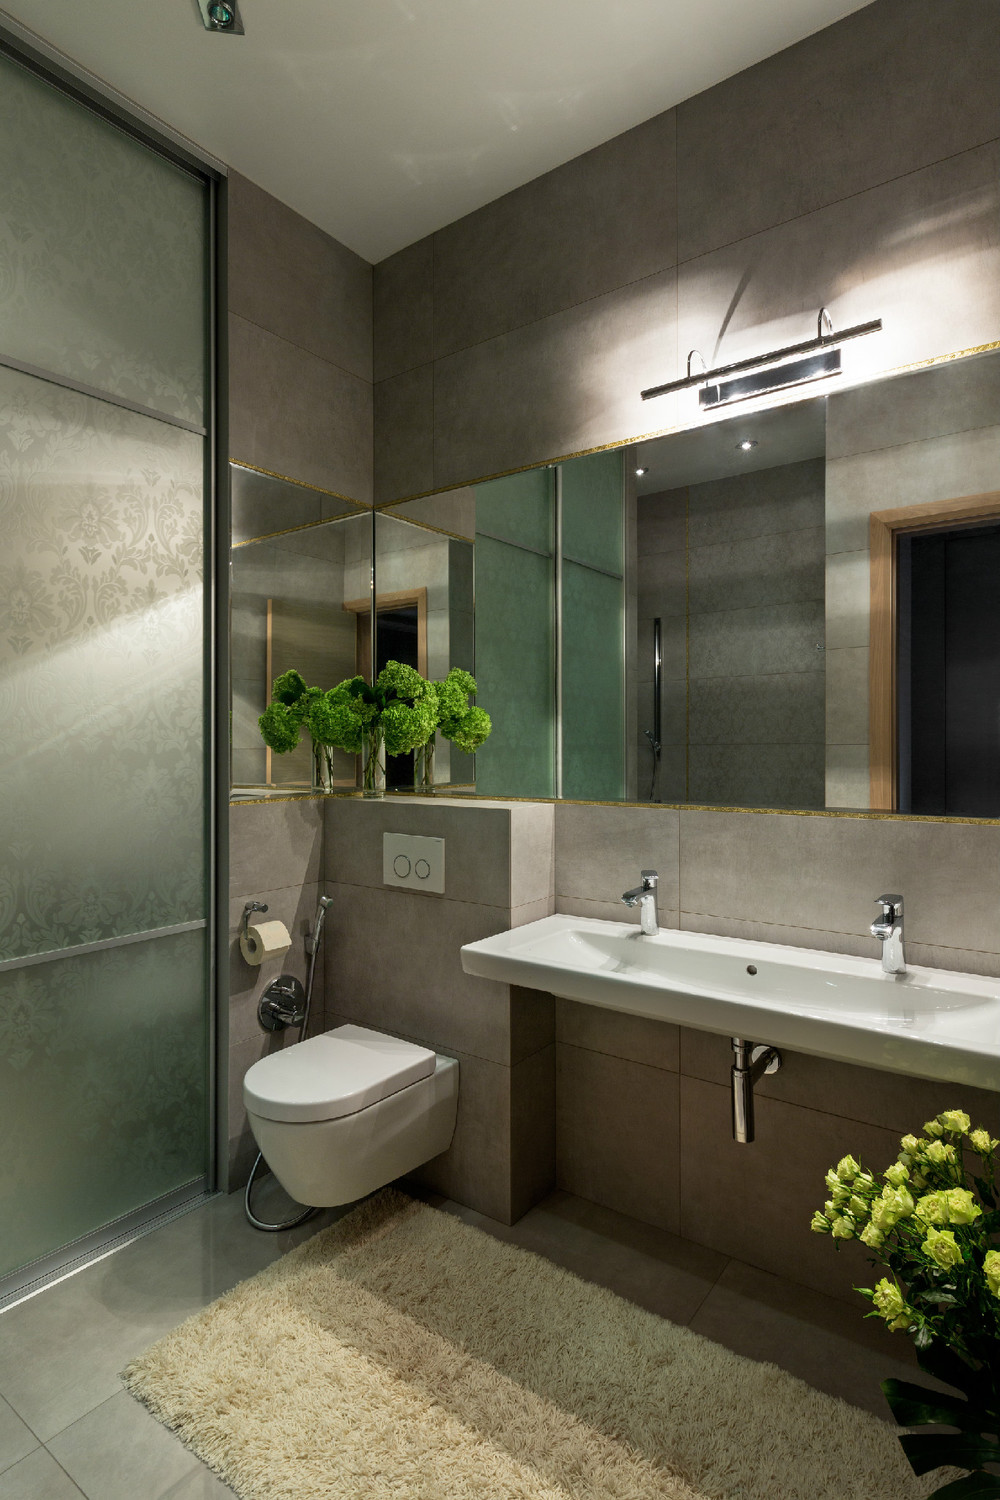 Bathroom Decor Ideas For Apartment